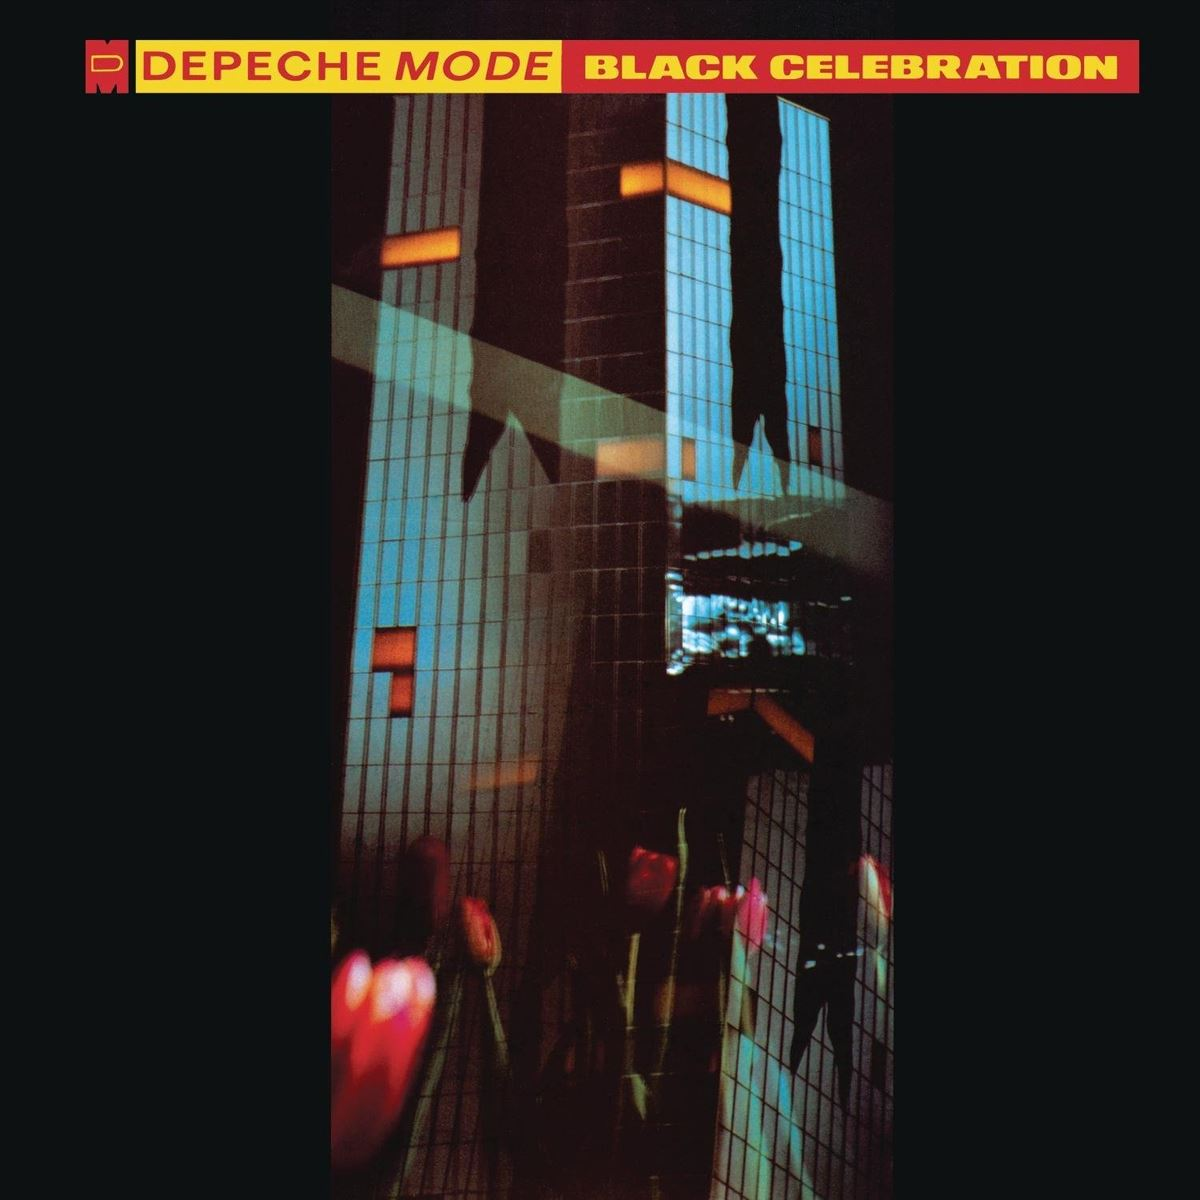 Cd depeche mode black celebration  - Sanborns